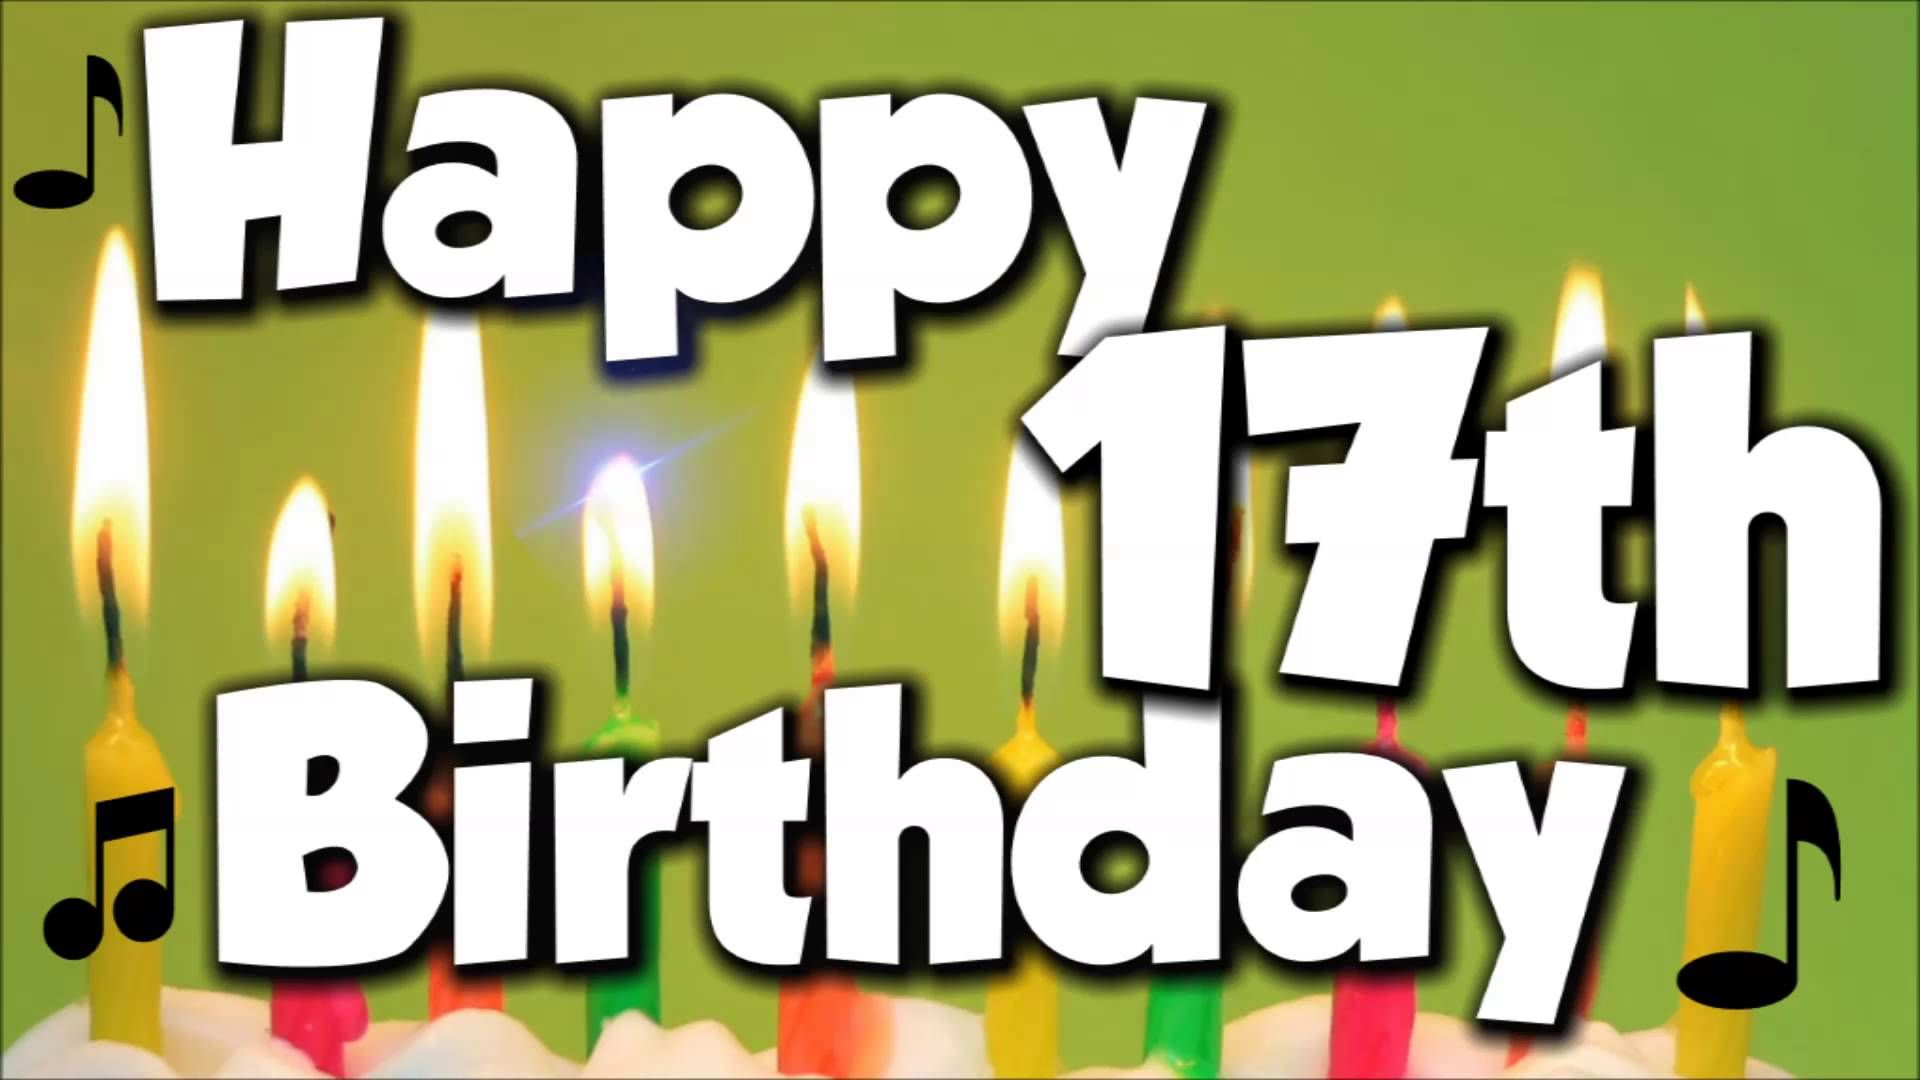 17th birthday cards happy birthday cards pinterest 17 birthday 17th birthday cards bookmarktalkfo Image collections